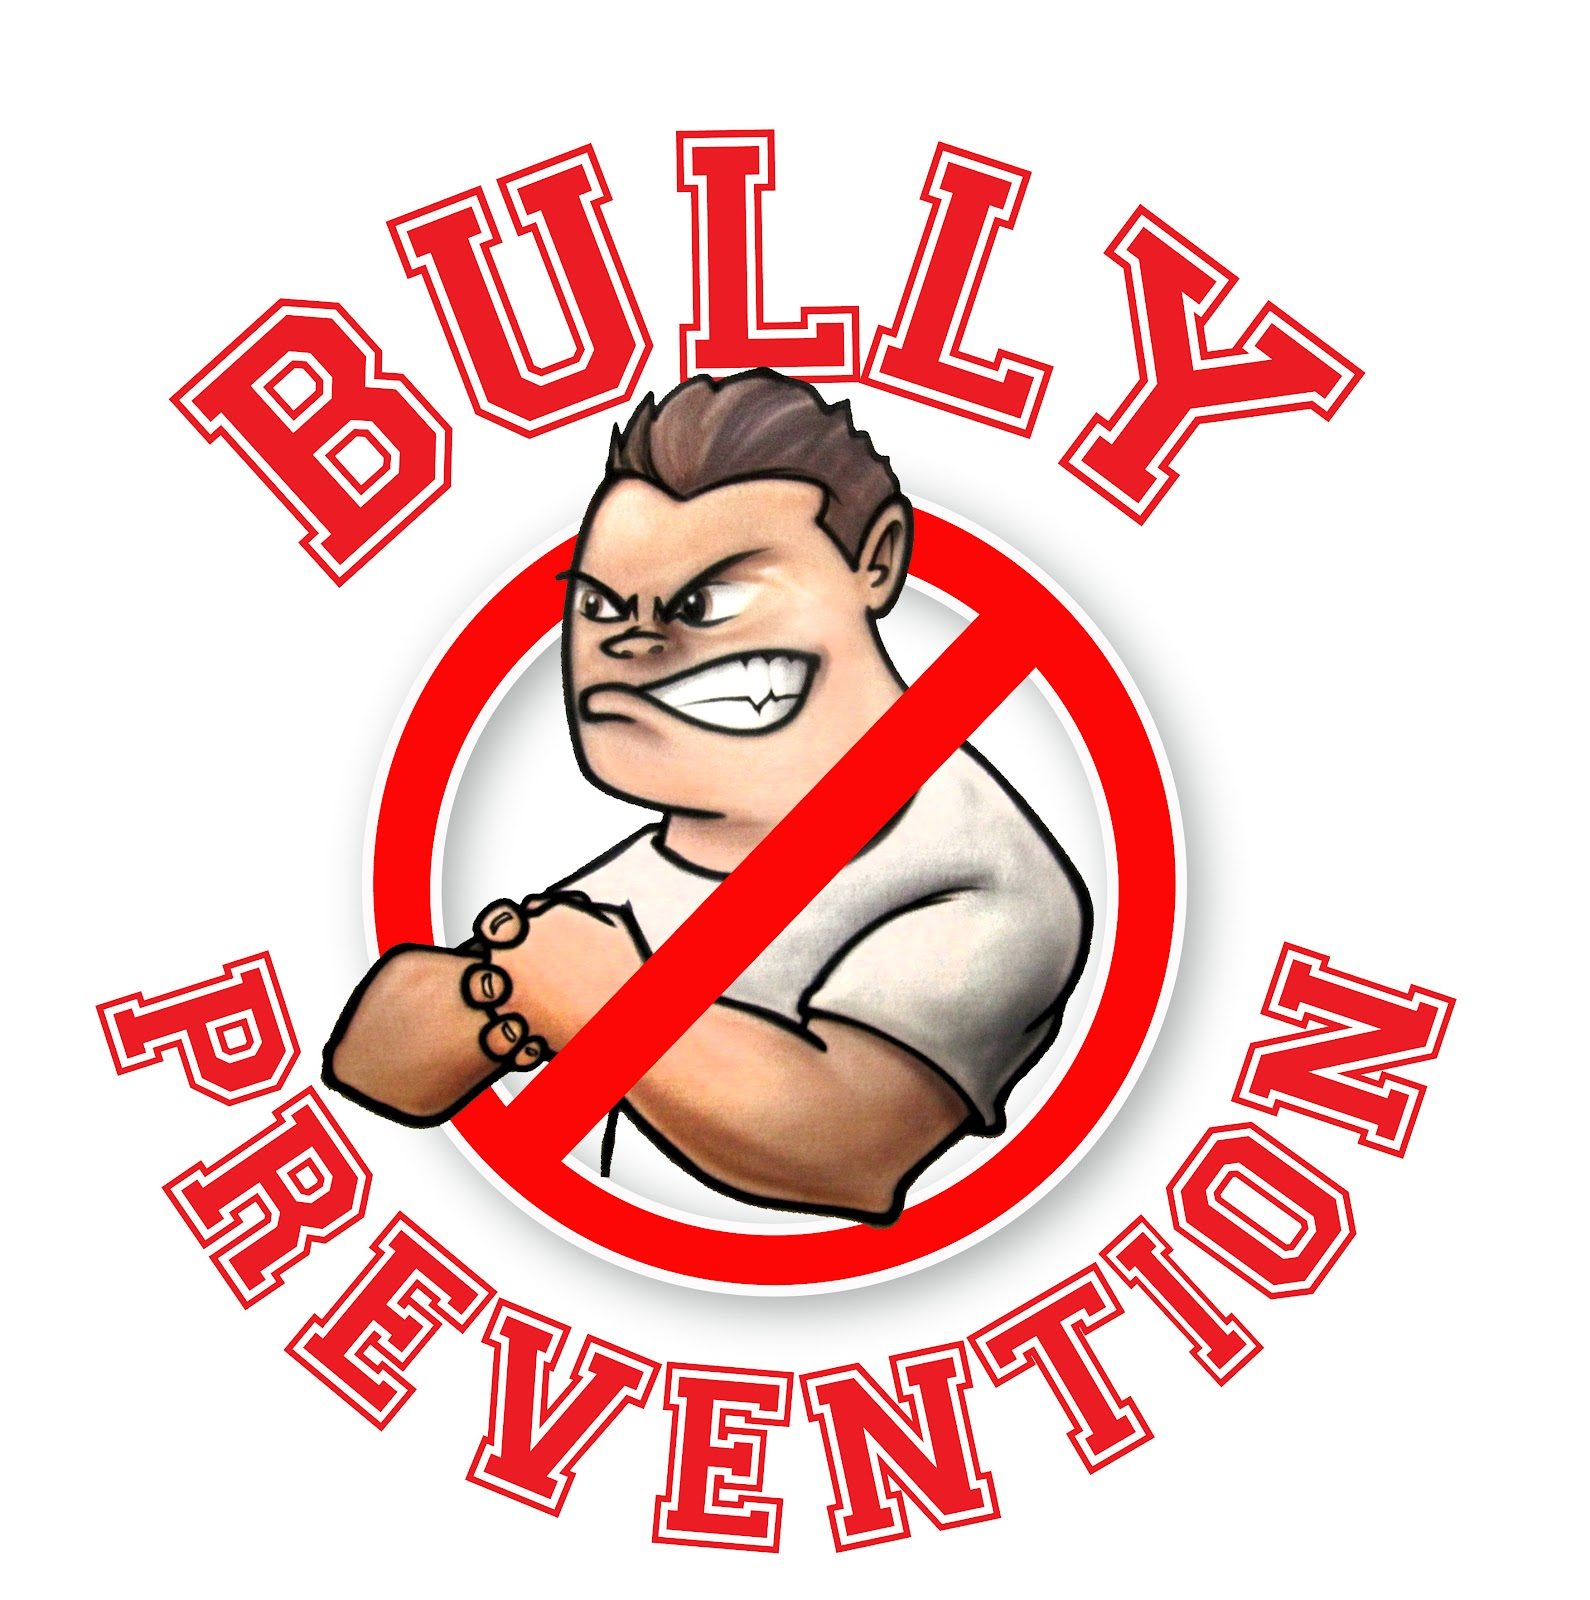 Tips for teachers principals. Bully clipart bullying prevention clipart transparent